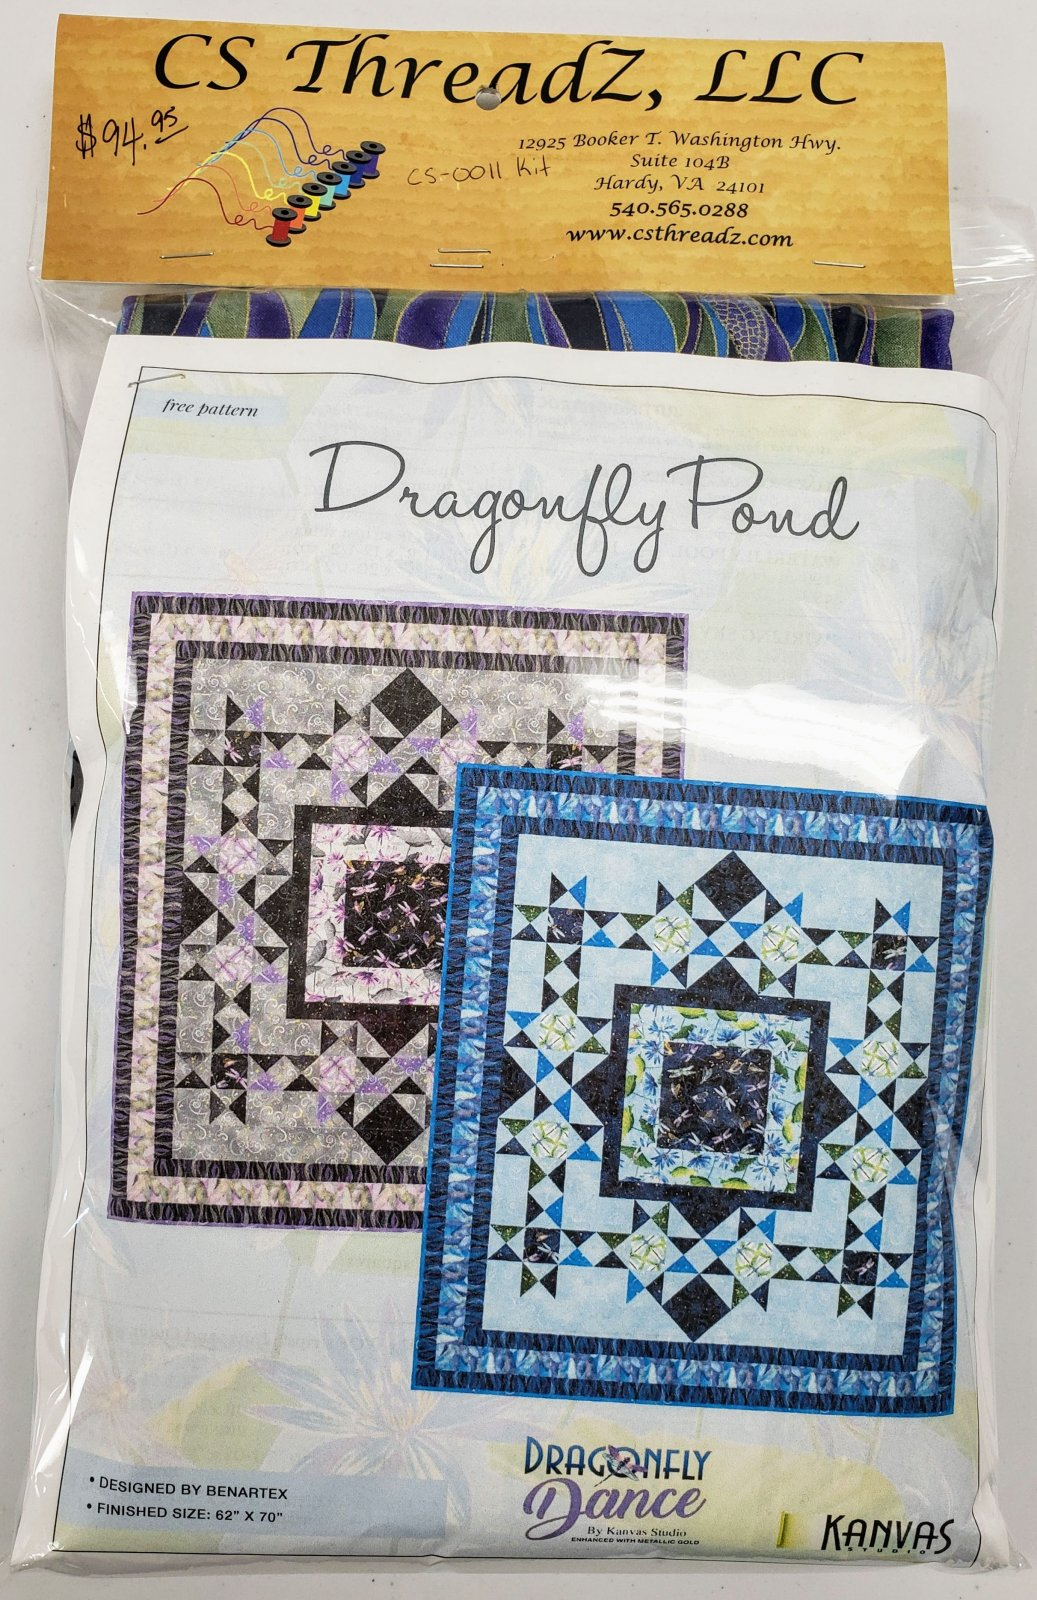 DRAGONFLY POND CS 0011 KIT